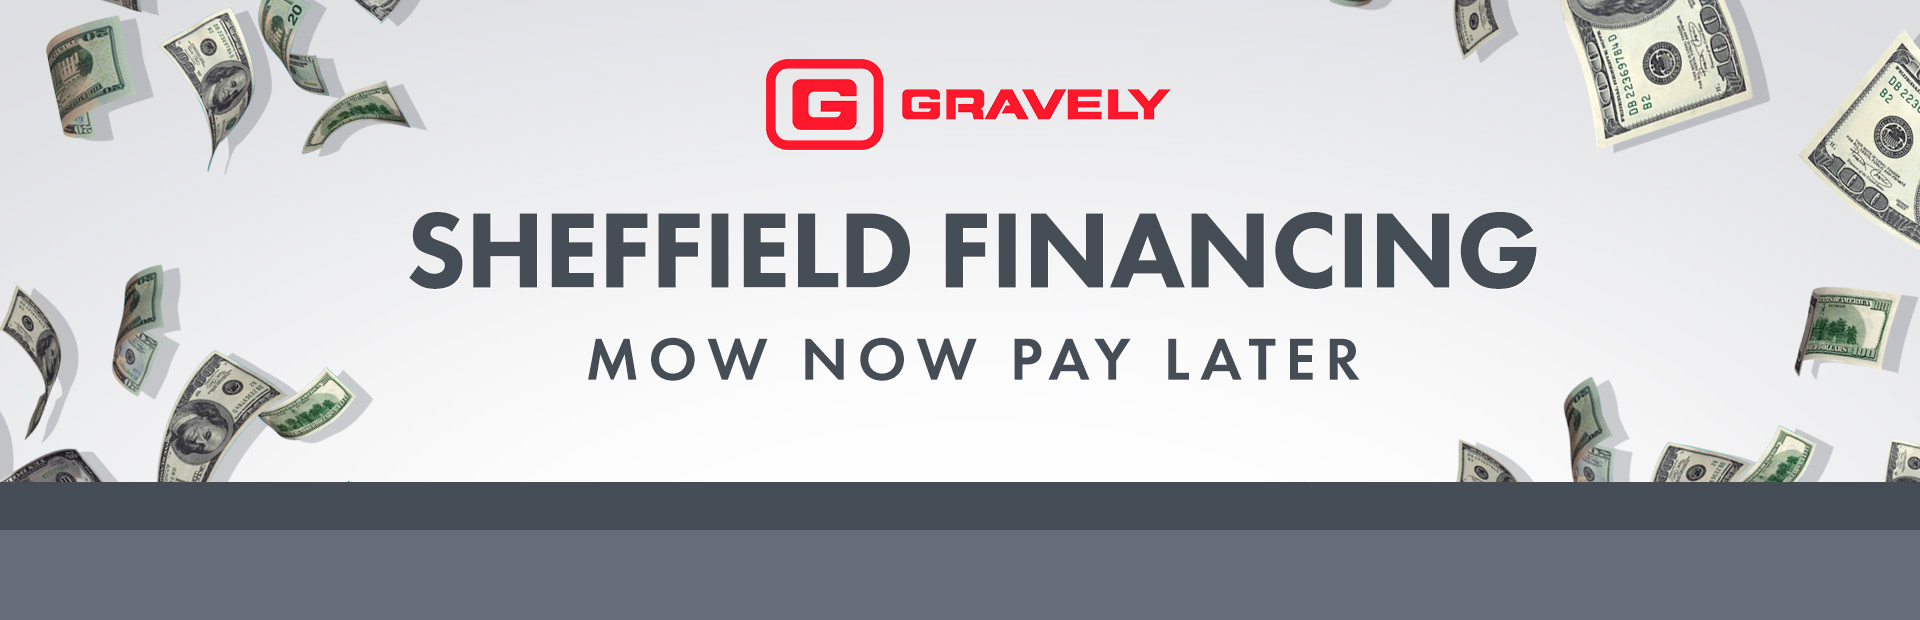 Gravely: Sheffield Financing Offers